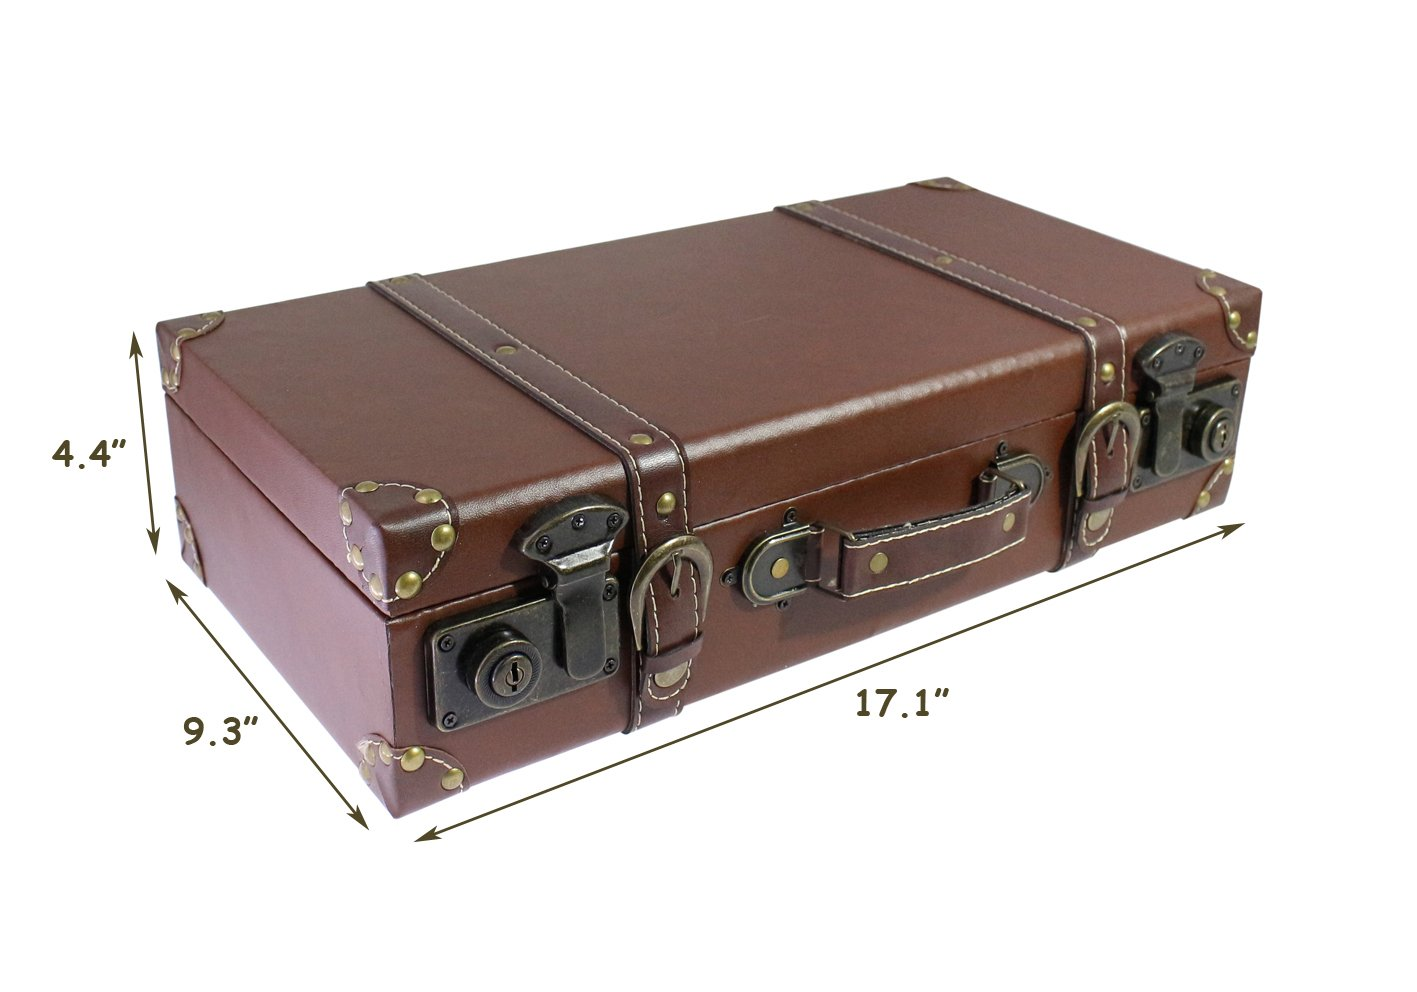 17.1'' Vintage Looking, Medium Wooden Faux Leather Suitcase with Handle for│Home Decor│Studio Photo Booth Props│Showcase Display - Brown